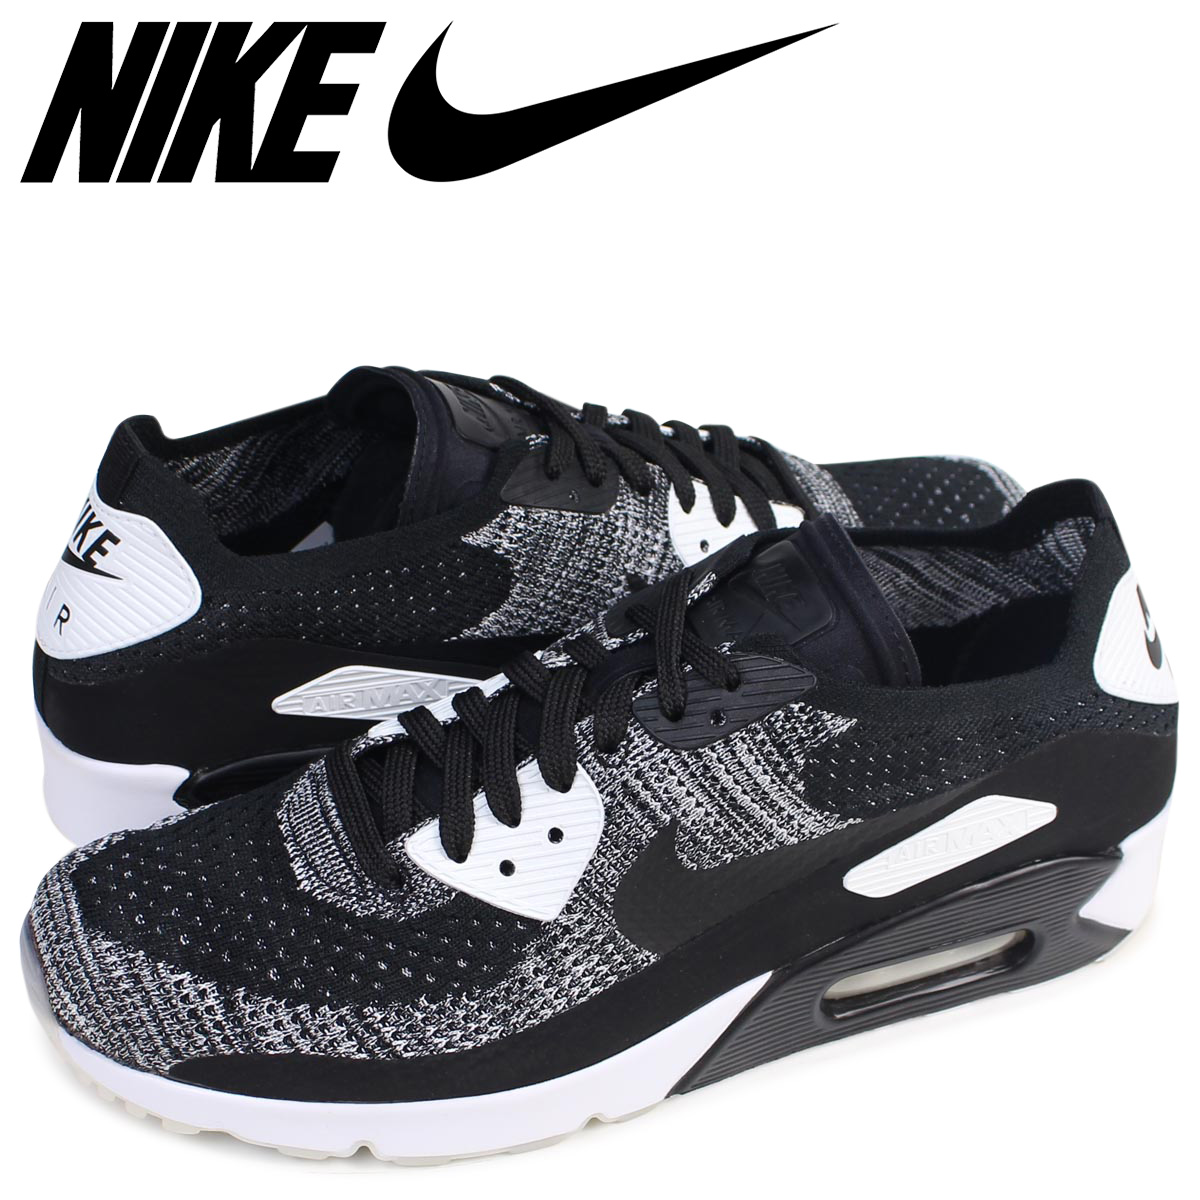 0bf21deae5e51 Sugar Online Shop: Nike NIKE Air Max 90 ultra fly knit sneakers AIR MAX 90  ULTRA 2.0 FLYKNIT 875,943-001 men's shoes black [load planned Shinnyu load  in ...